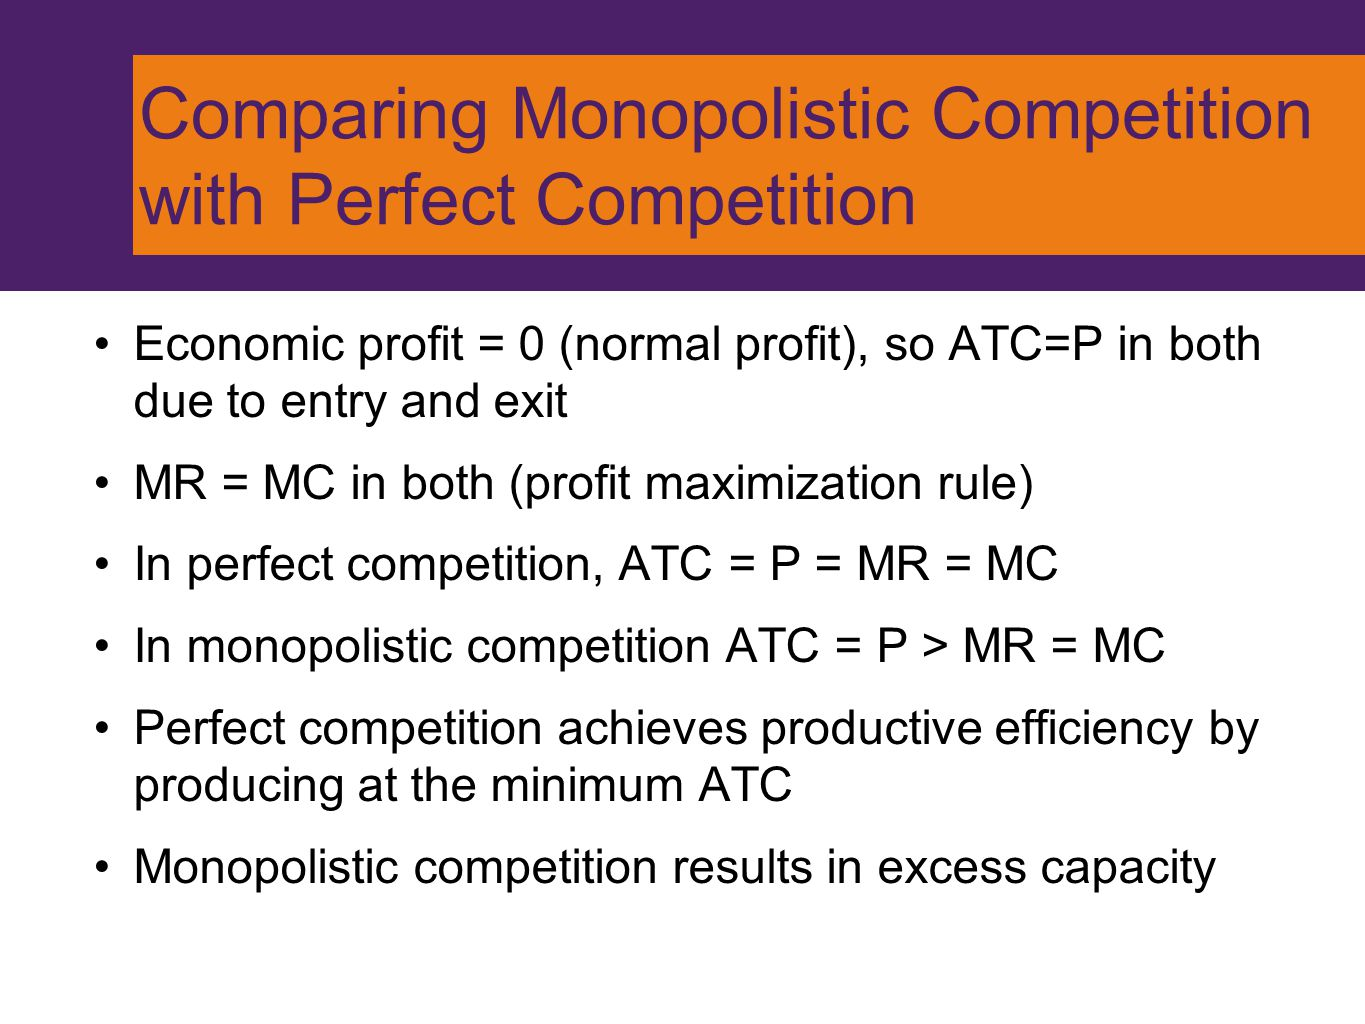 Comparing Monopolistic Competition with Perfect Competition